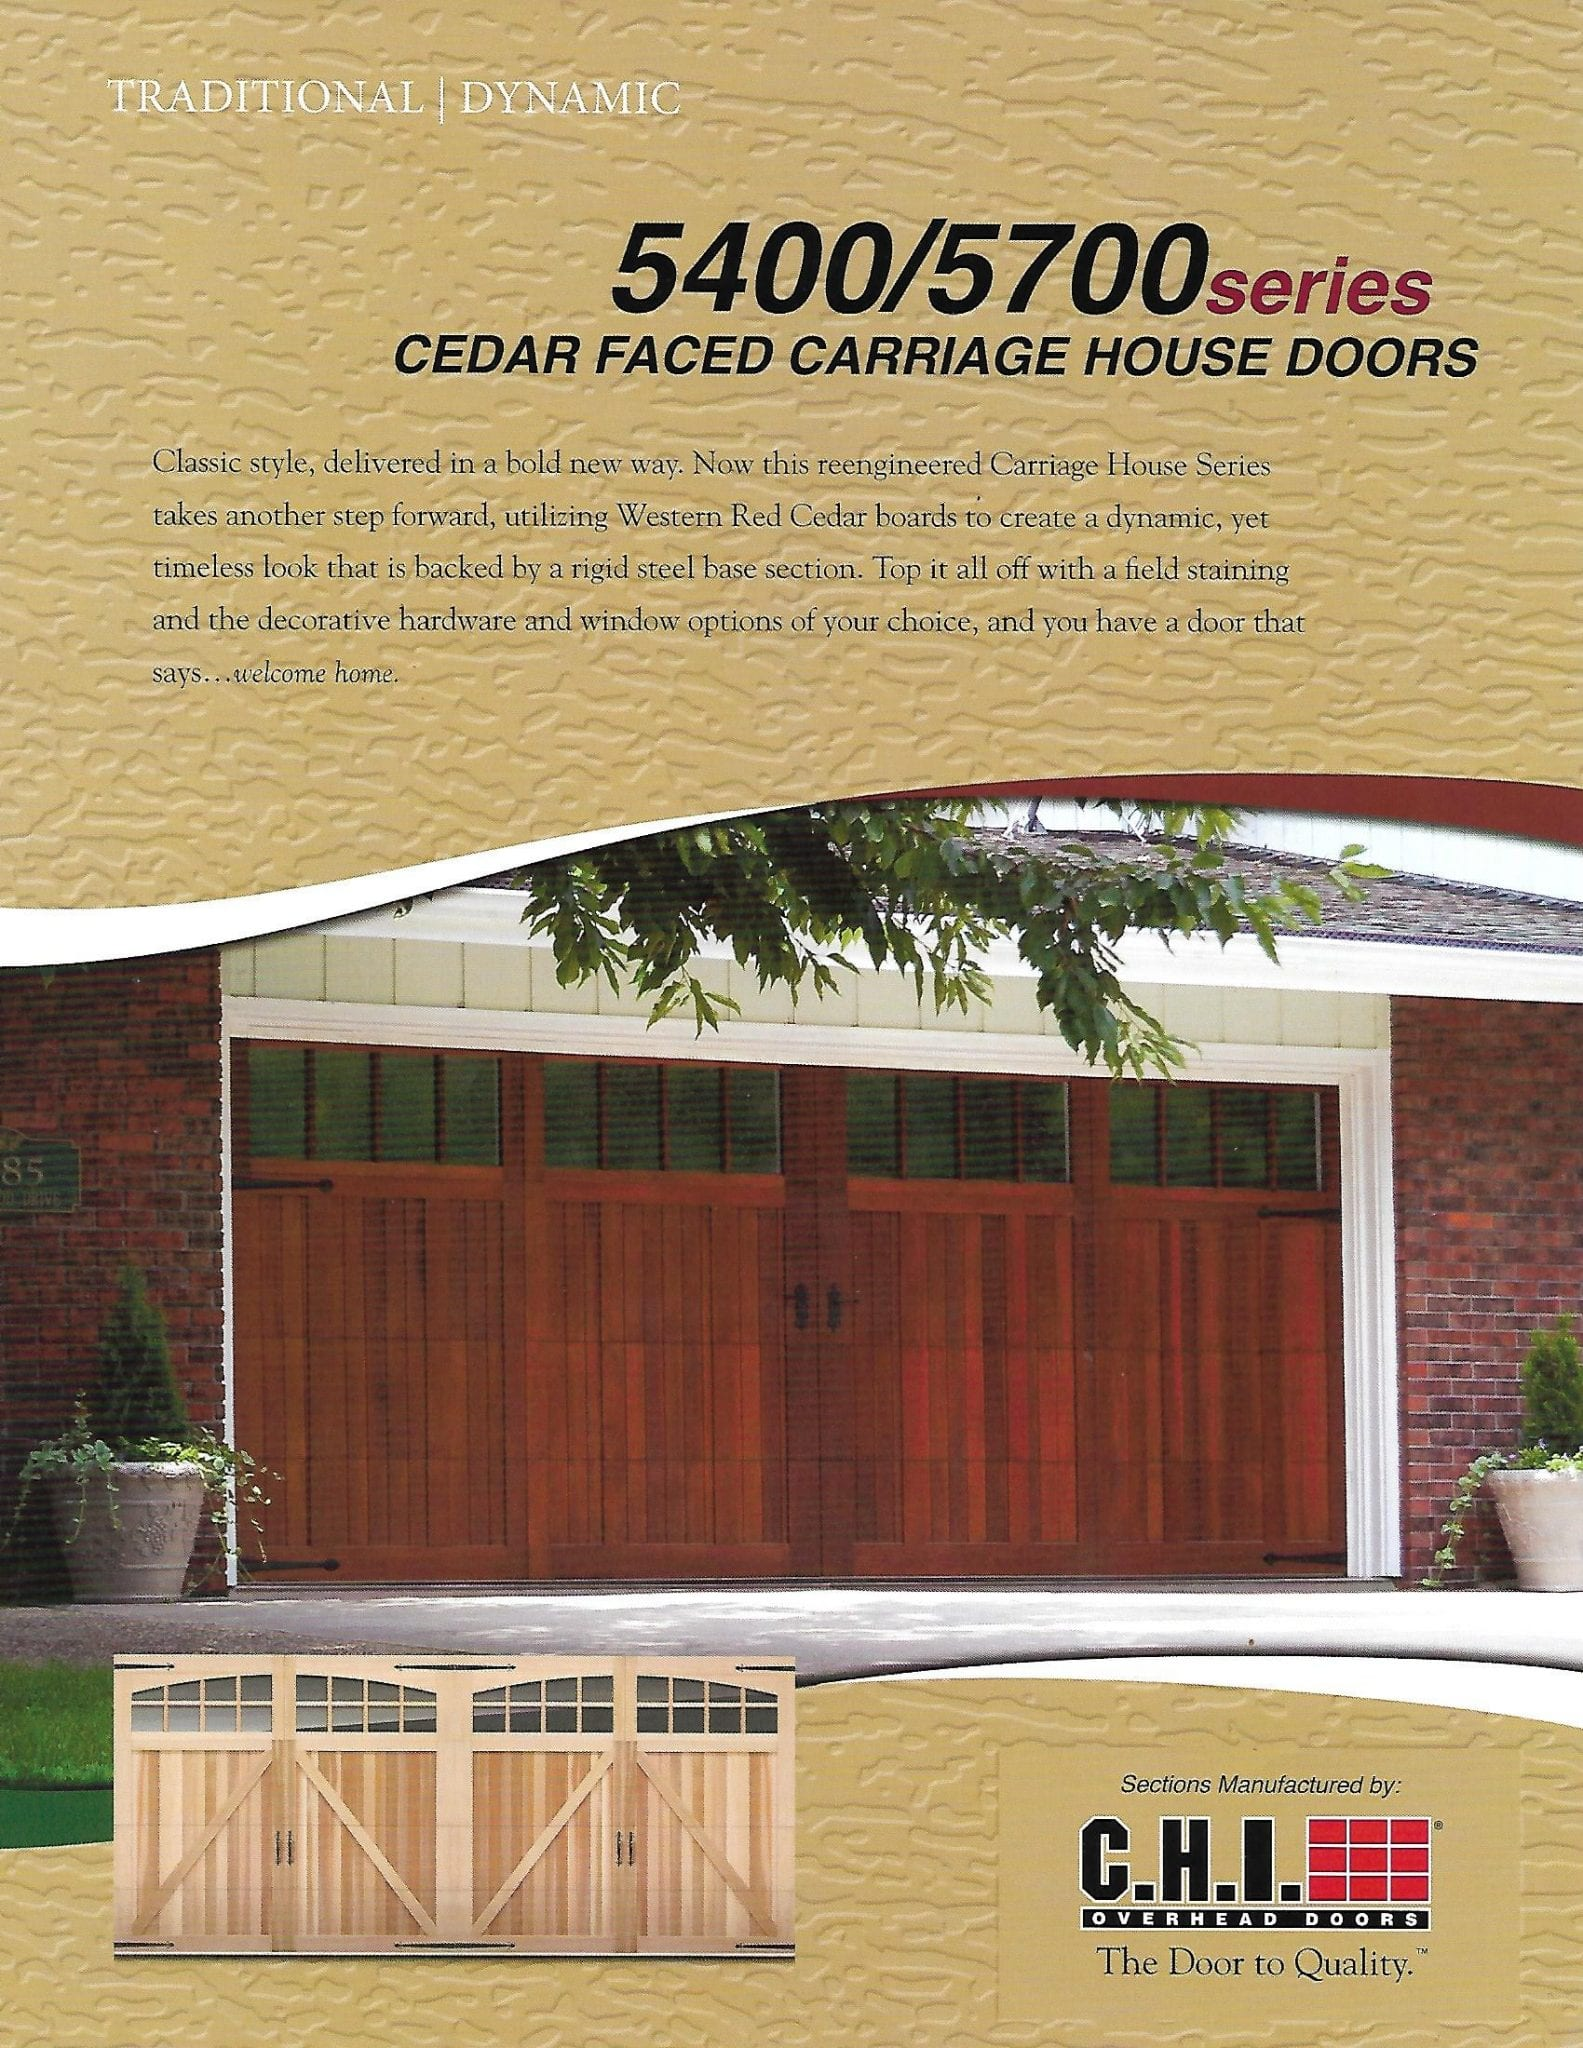 Wood Overlay Garage Door Service in Katy